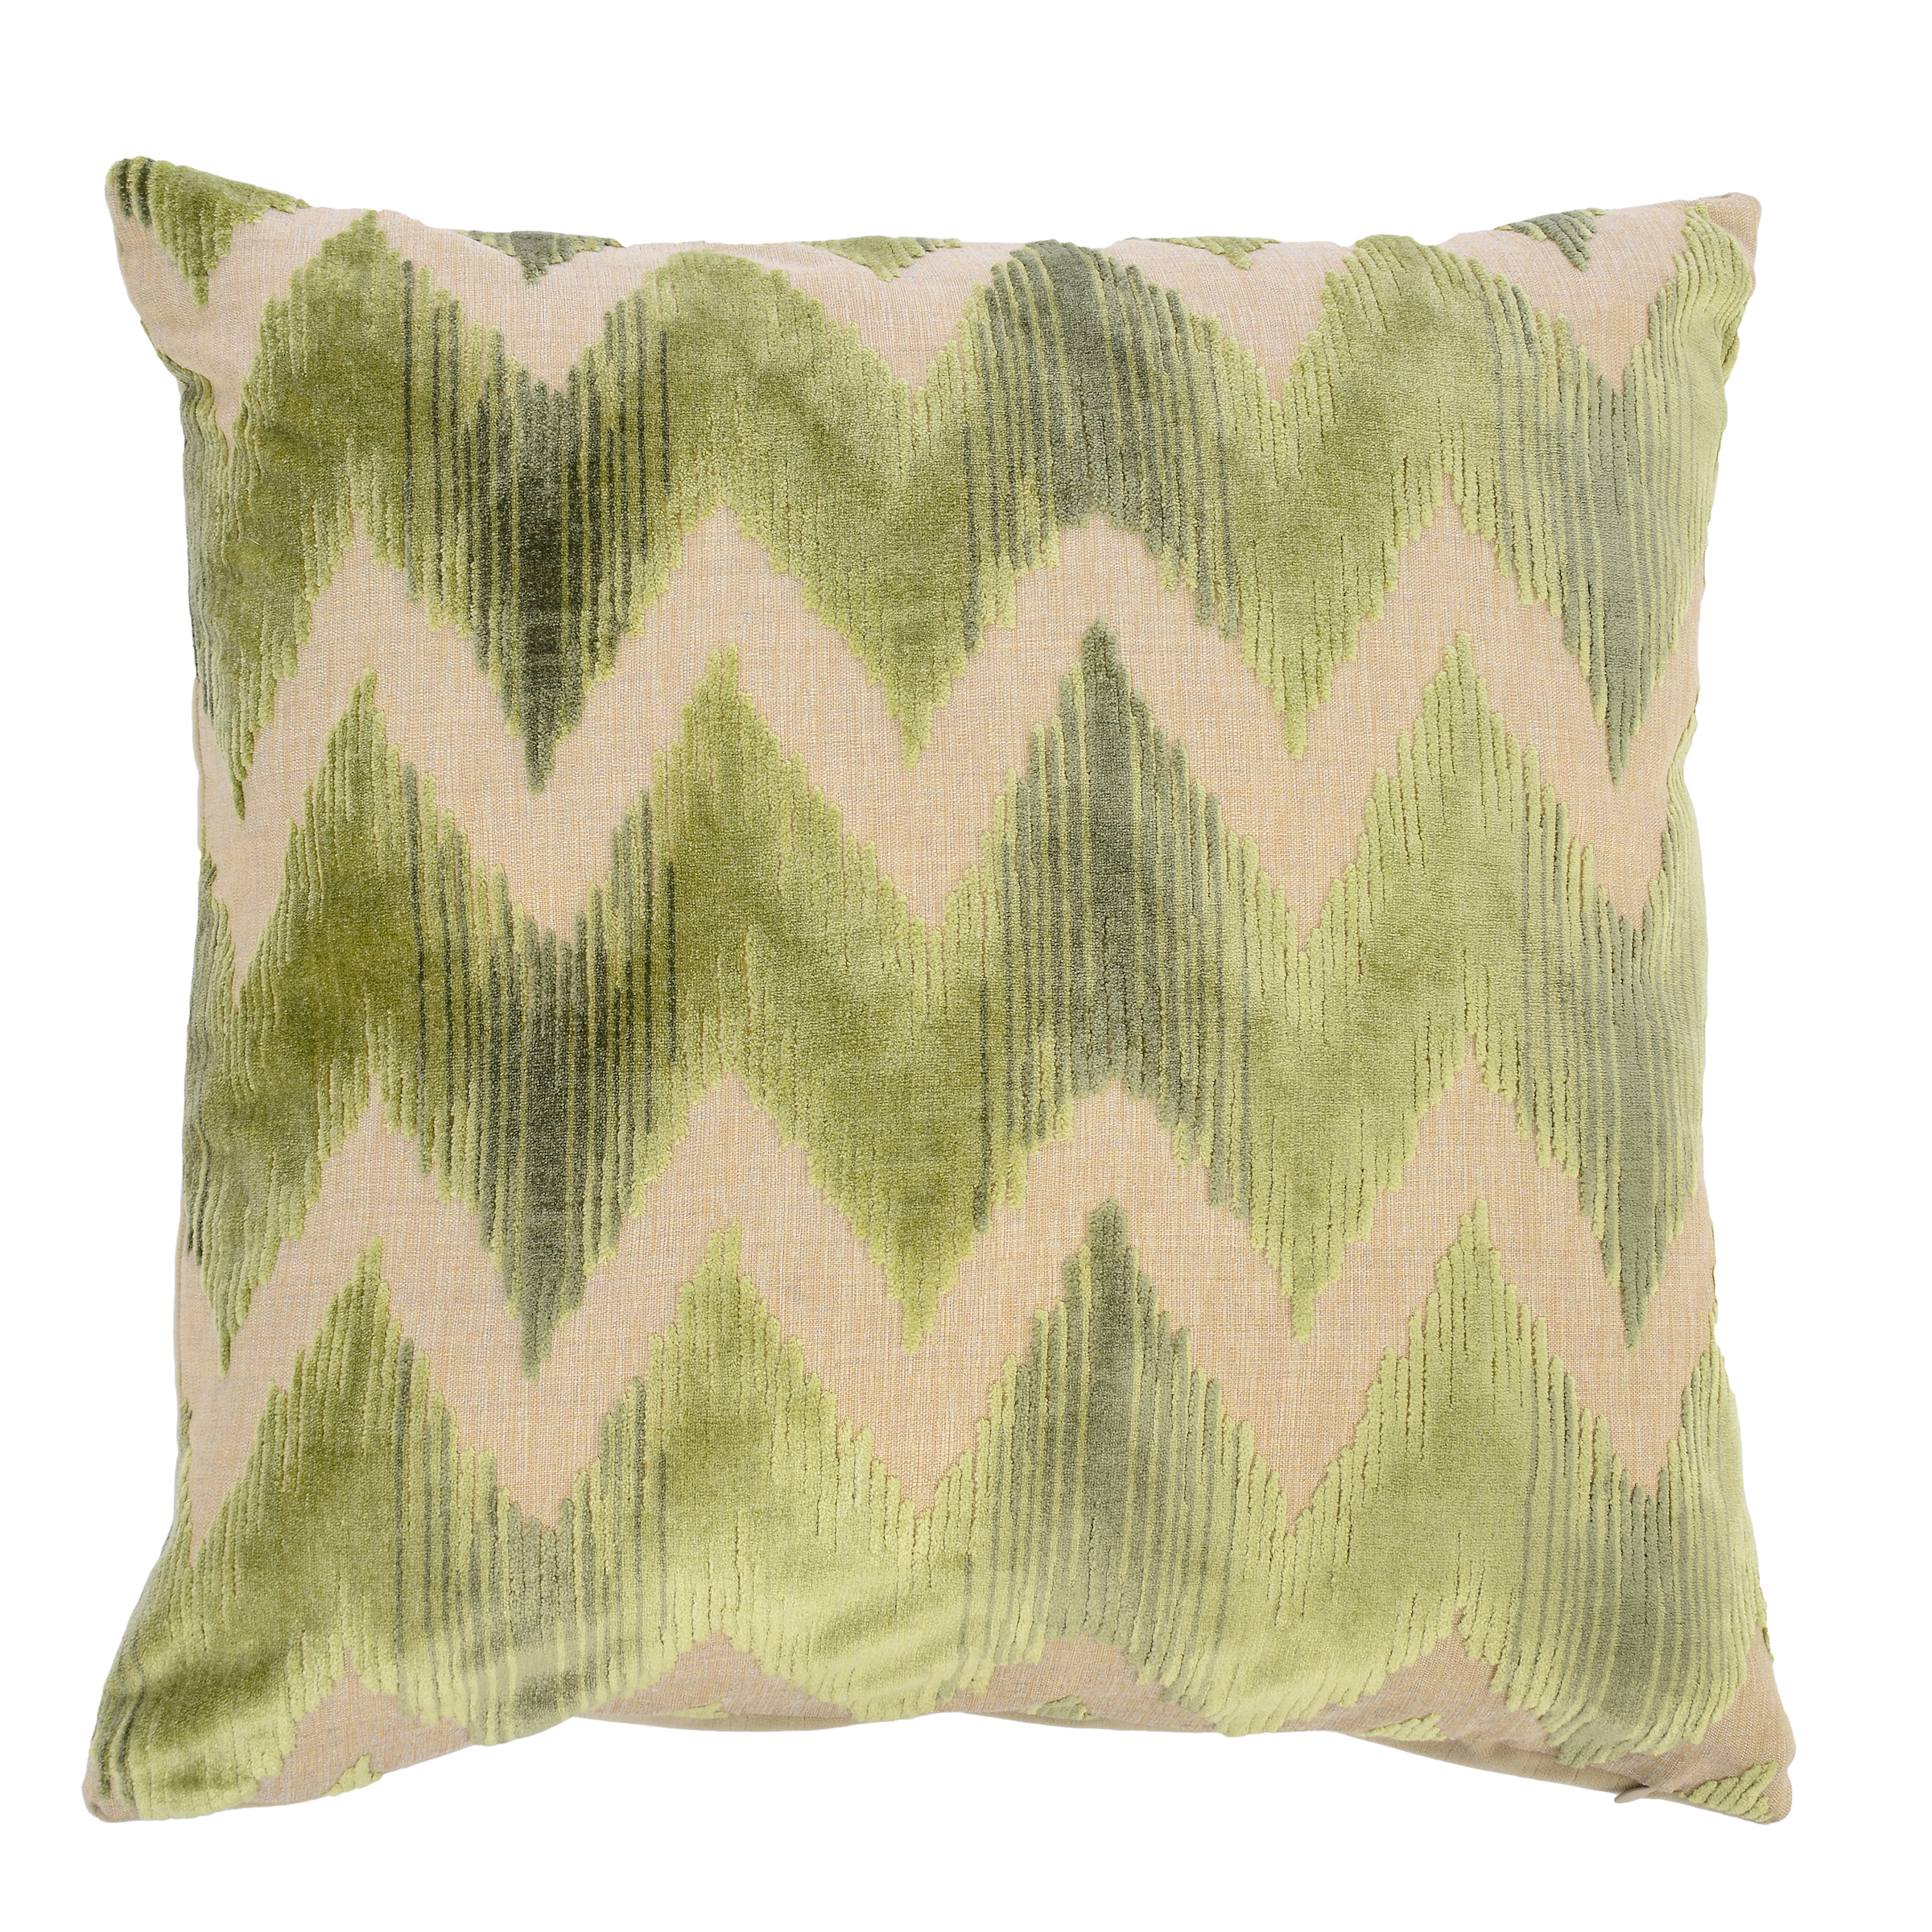 Pulp Home - Mary Pillow Green